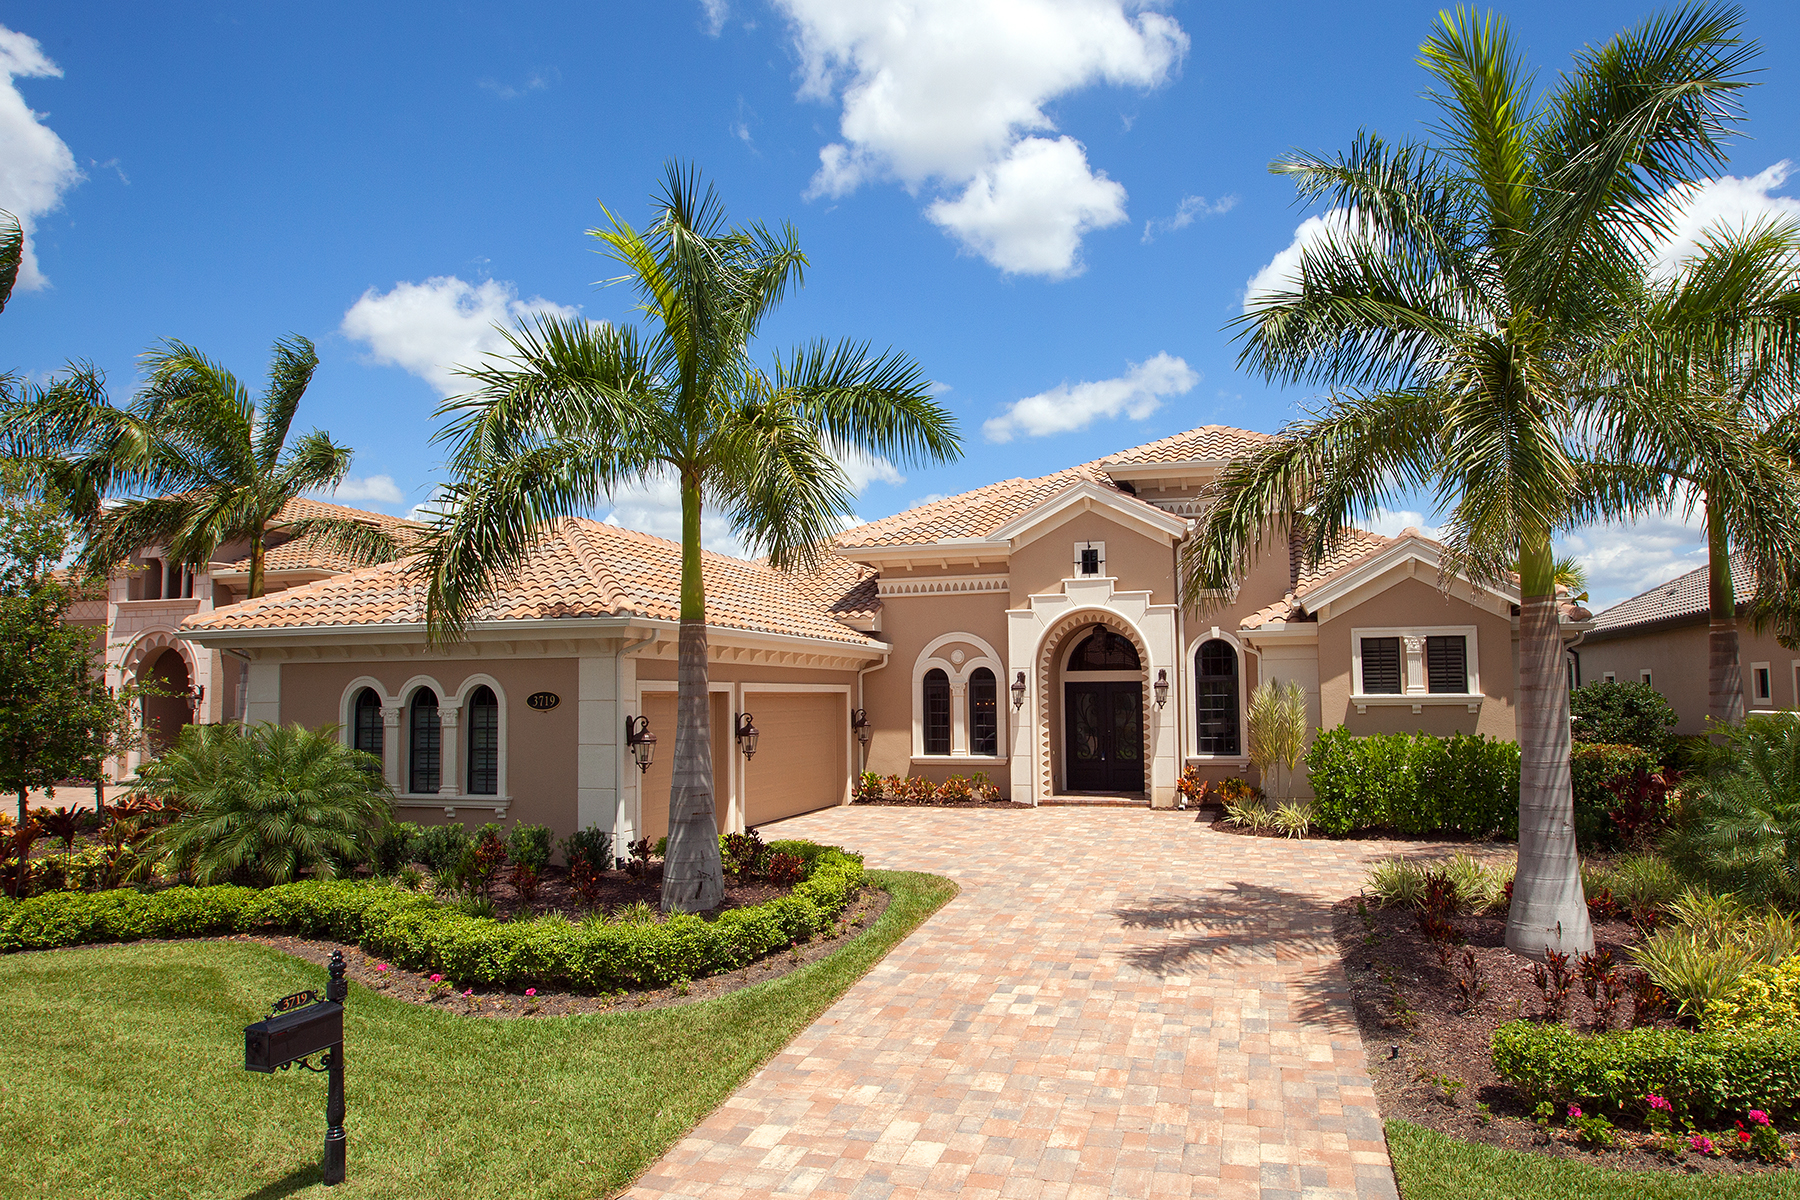 Single Family Home for Sale at FIDDLERS CREEK - MAHOGANY BEND 3719 Mahogany Bend Dr, Naples, Florida 34114 United States